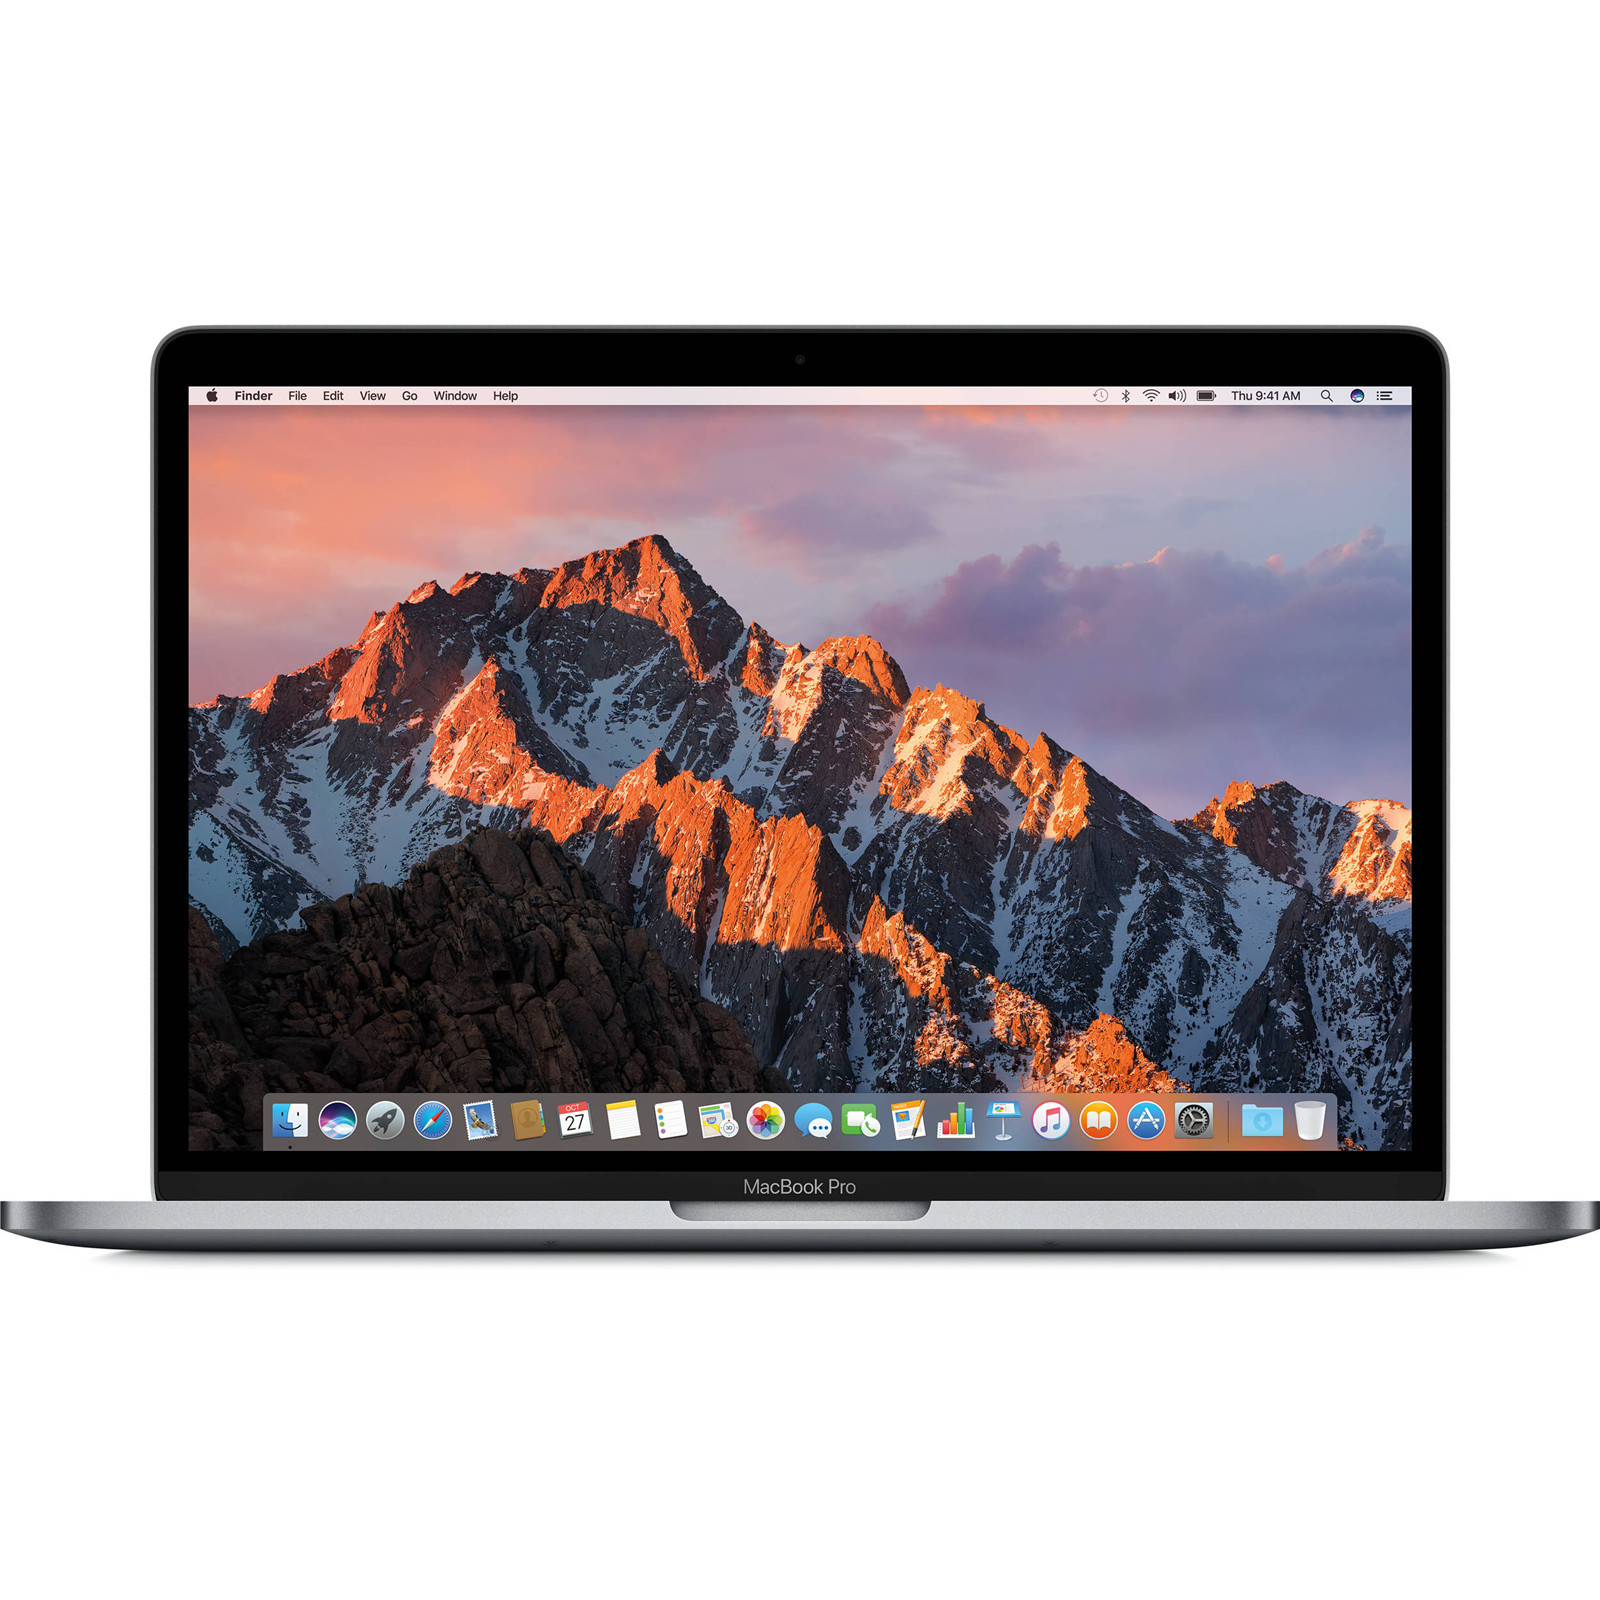 Buy The Apple 13 Macbook Pro Function Key I5 23ghz 8gb Ram 128gb And Testing Of Highspeed Optical Integrated Circuits At Fujitsu Ssd Space Grey Intel Iris Plus Graphics 640